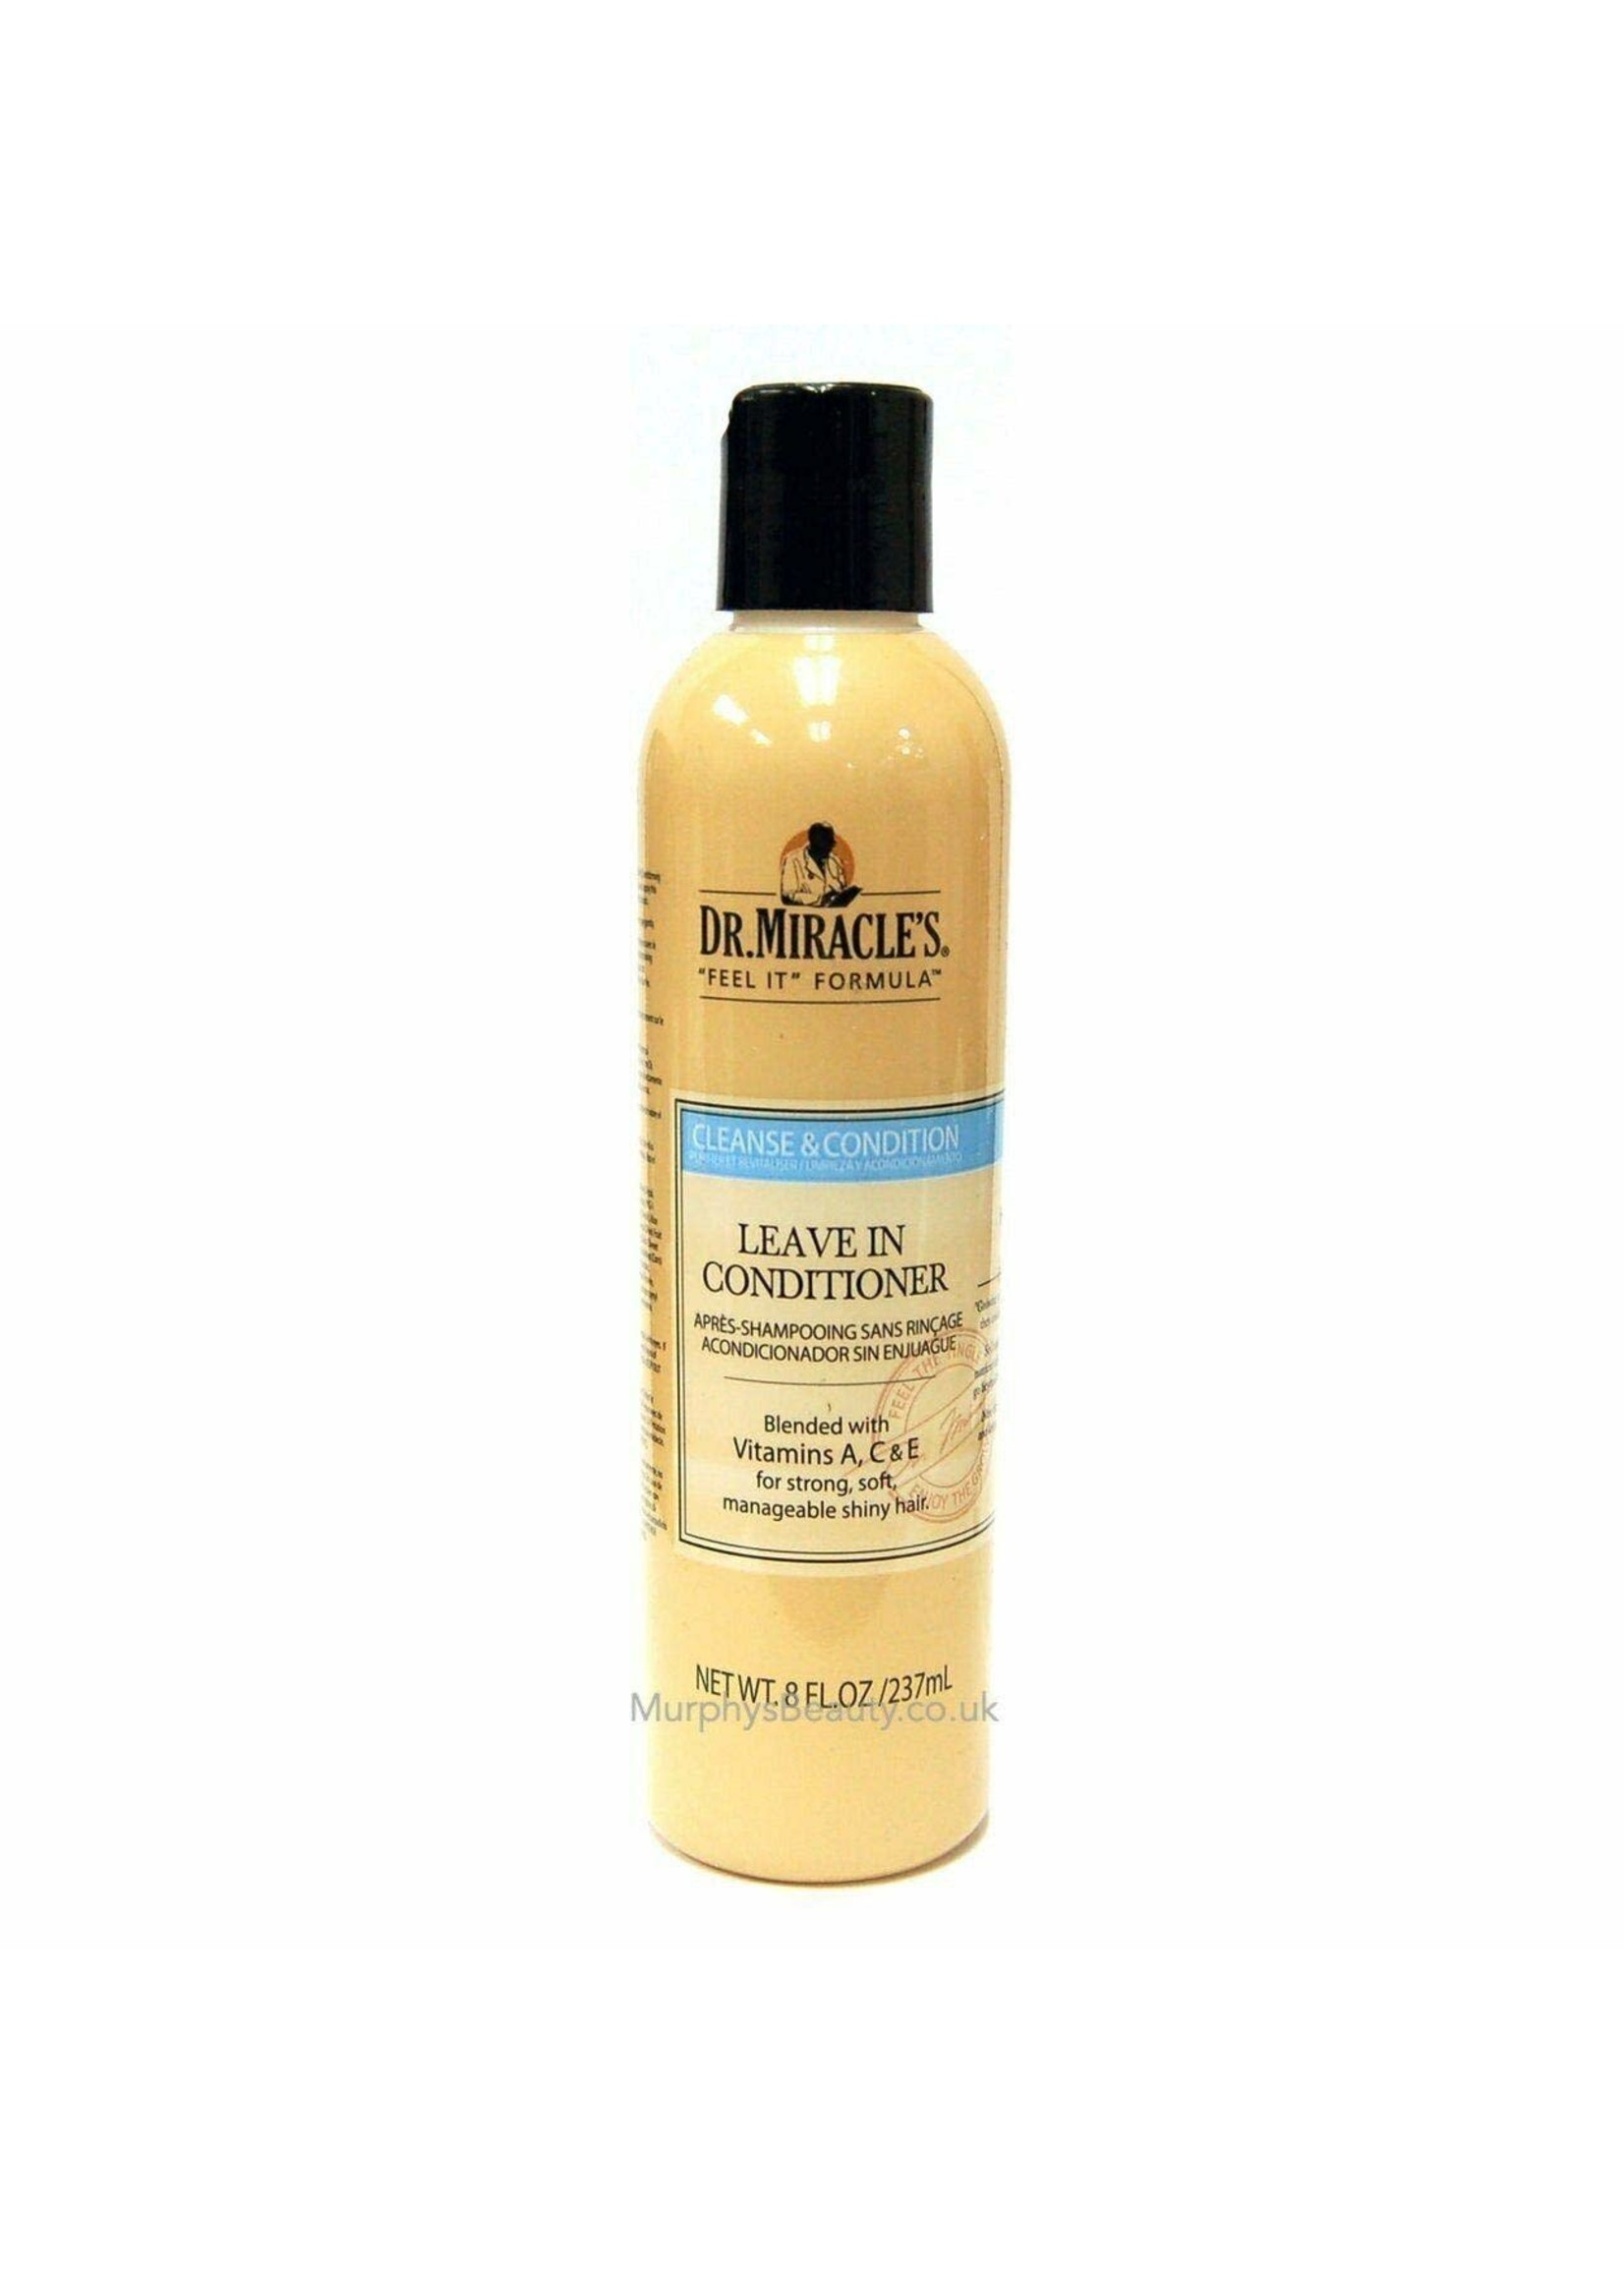 Dr. Miracles Leave-In Conditioner